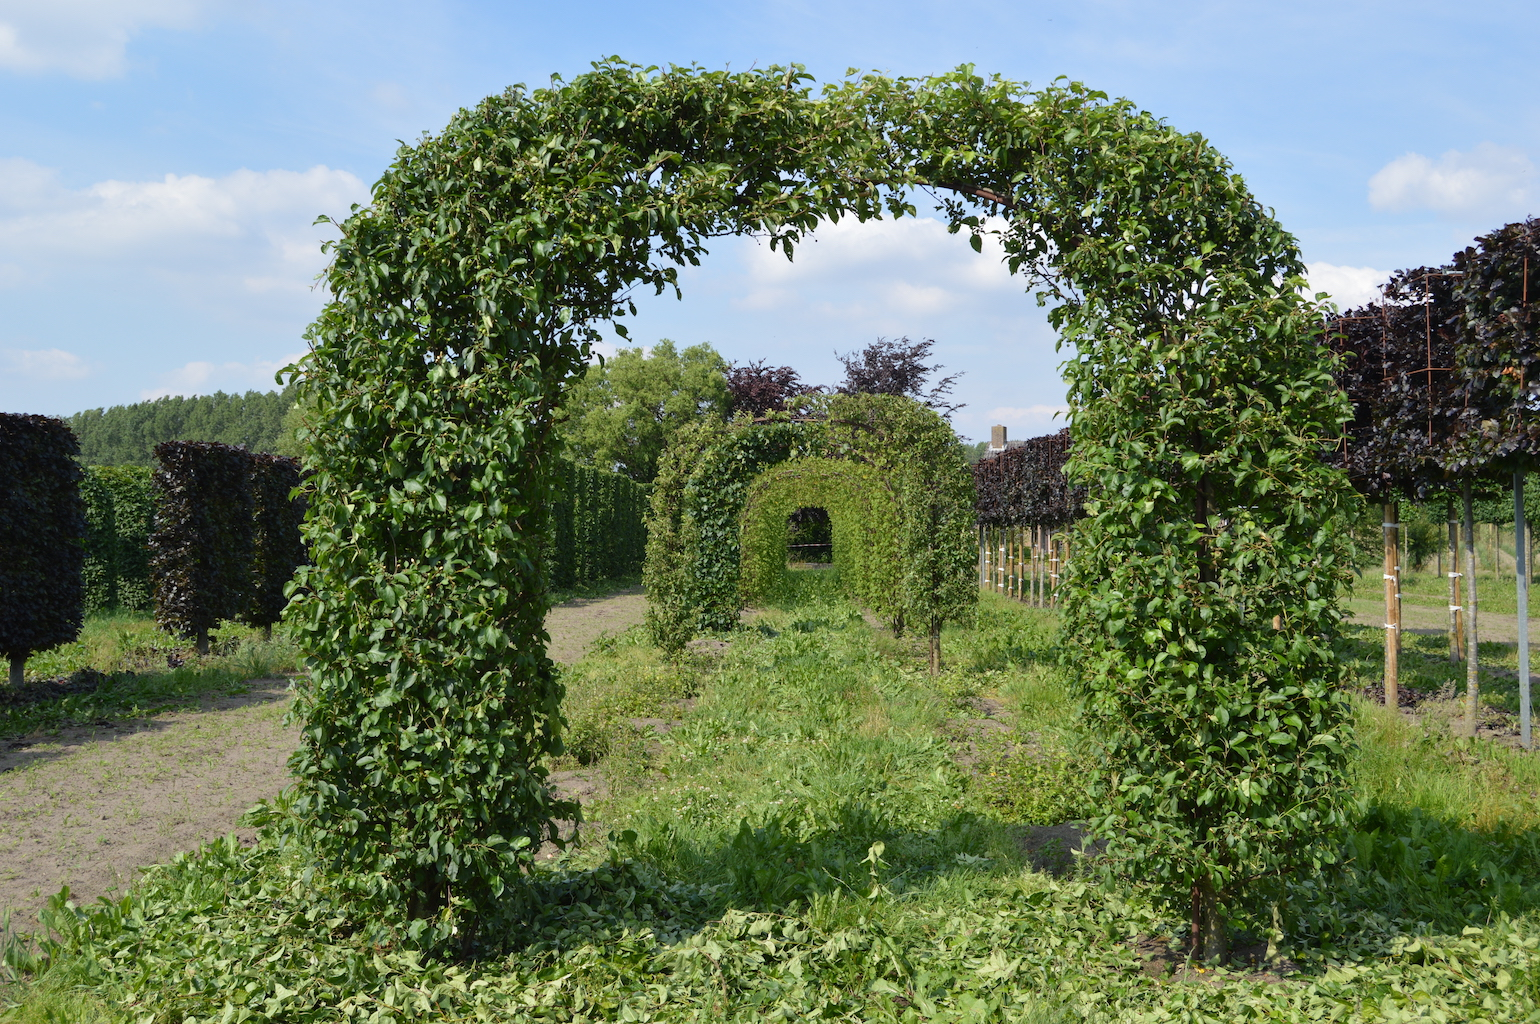 Malus 'Evereste' topiary arch